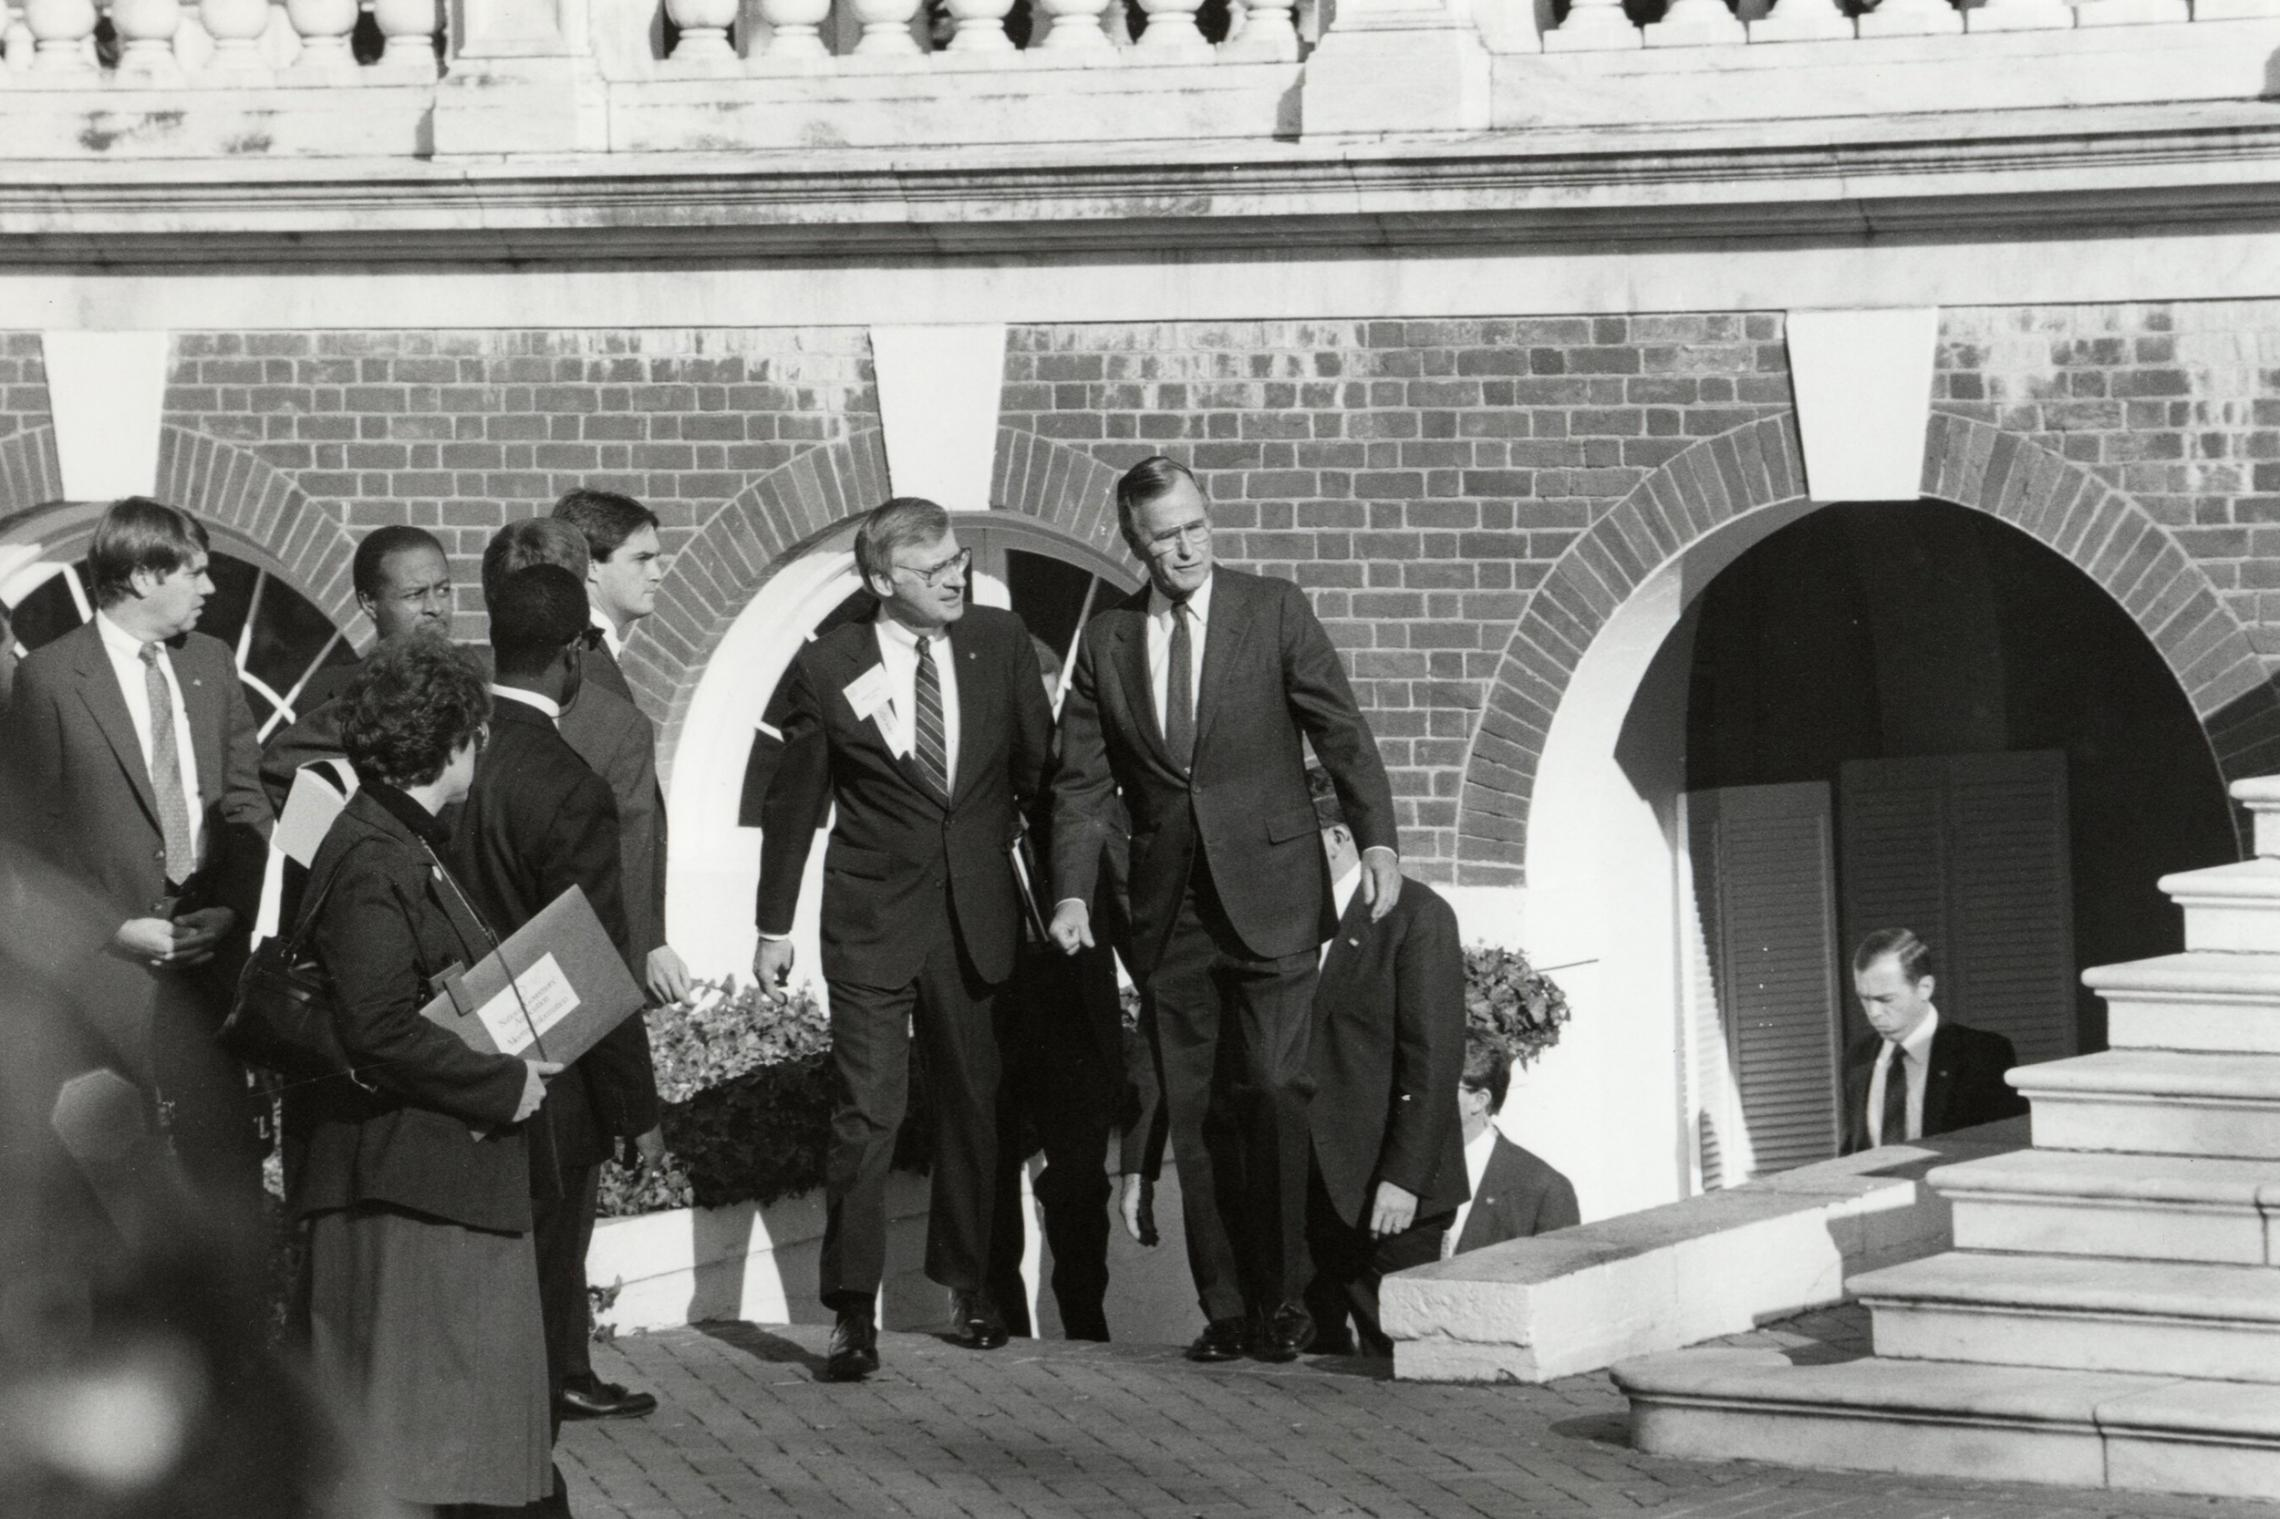 In addition to his graduation speech in 1981 and an education summit in 1989, George H.W. Bush was on Grounds in 1988, just before beginning his presidency. (Photo courtesy Albert and Shirley Small Special Collections Library)